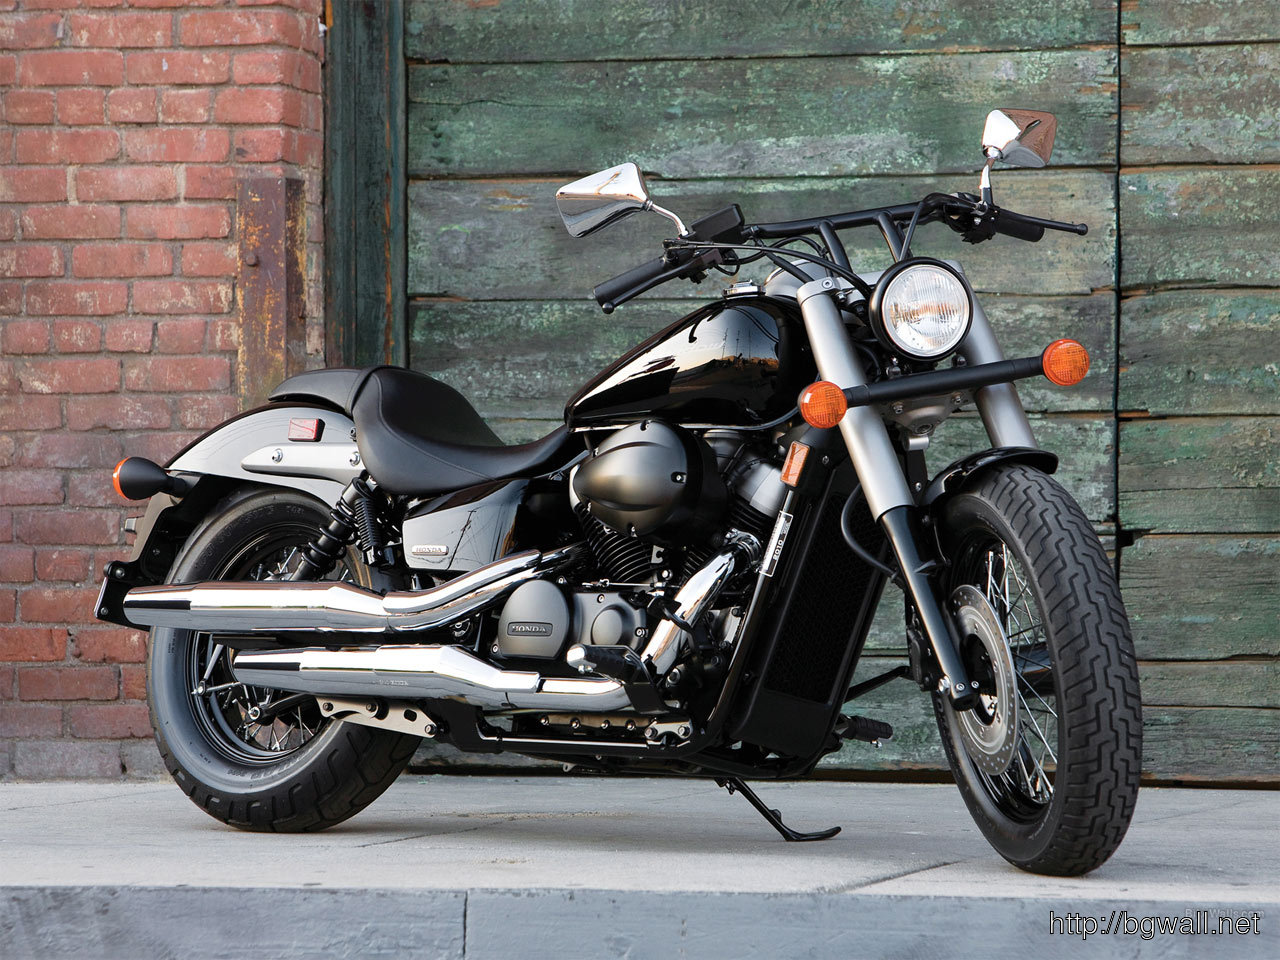 Honda Shadow Phantom 1280 X 960 Wallpaper Full Size